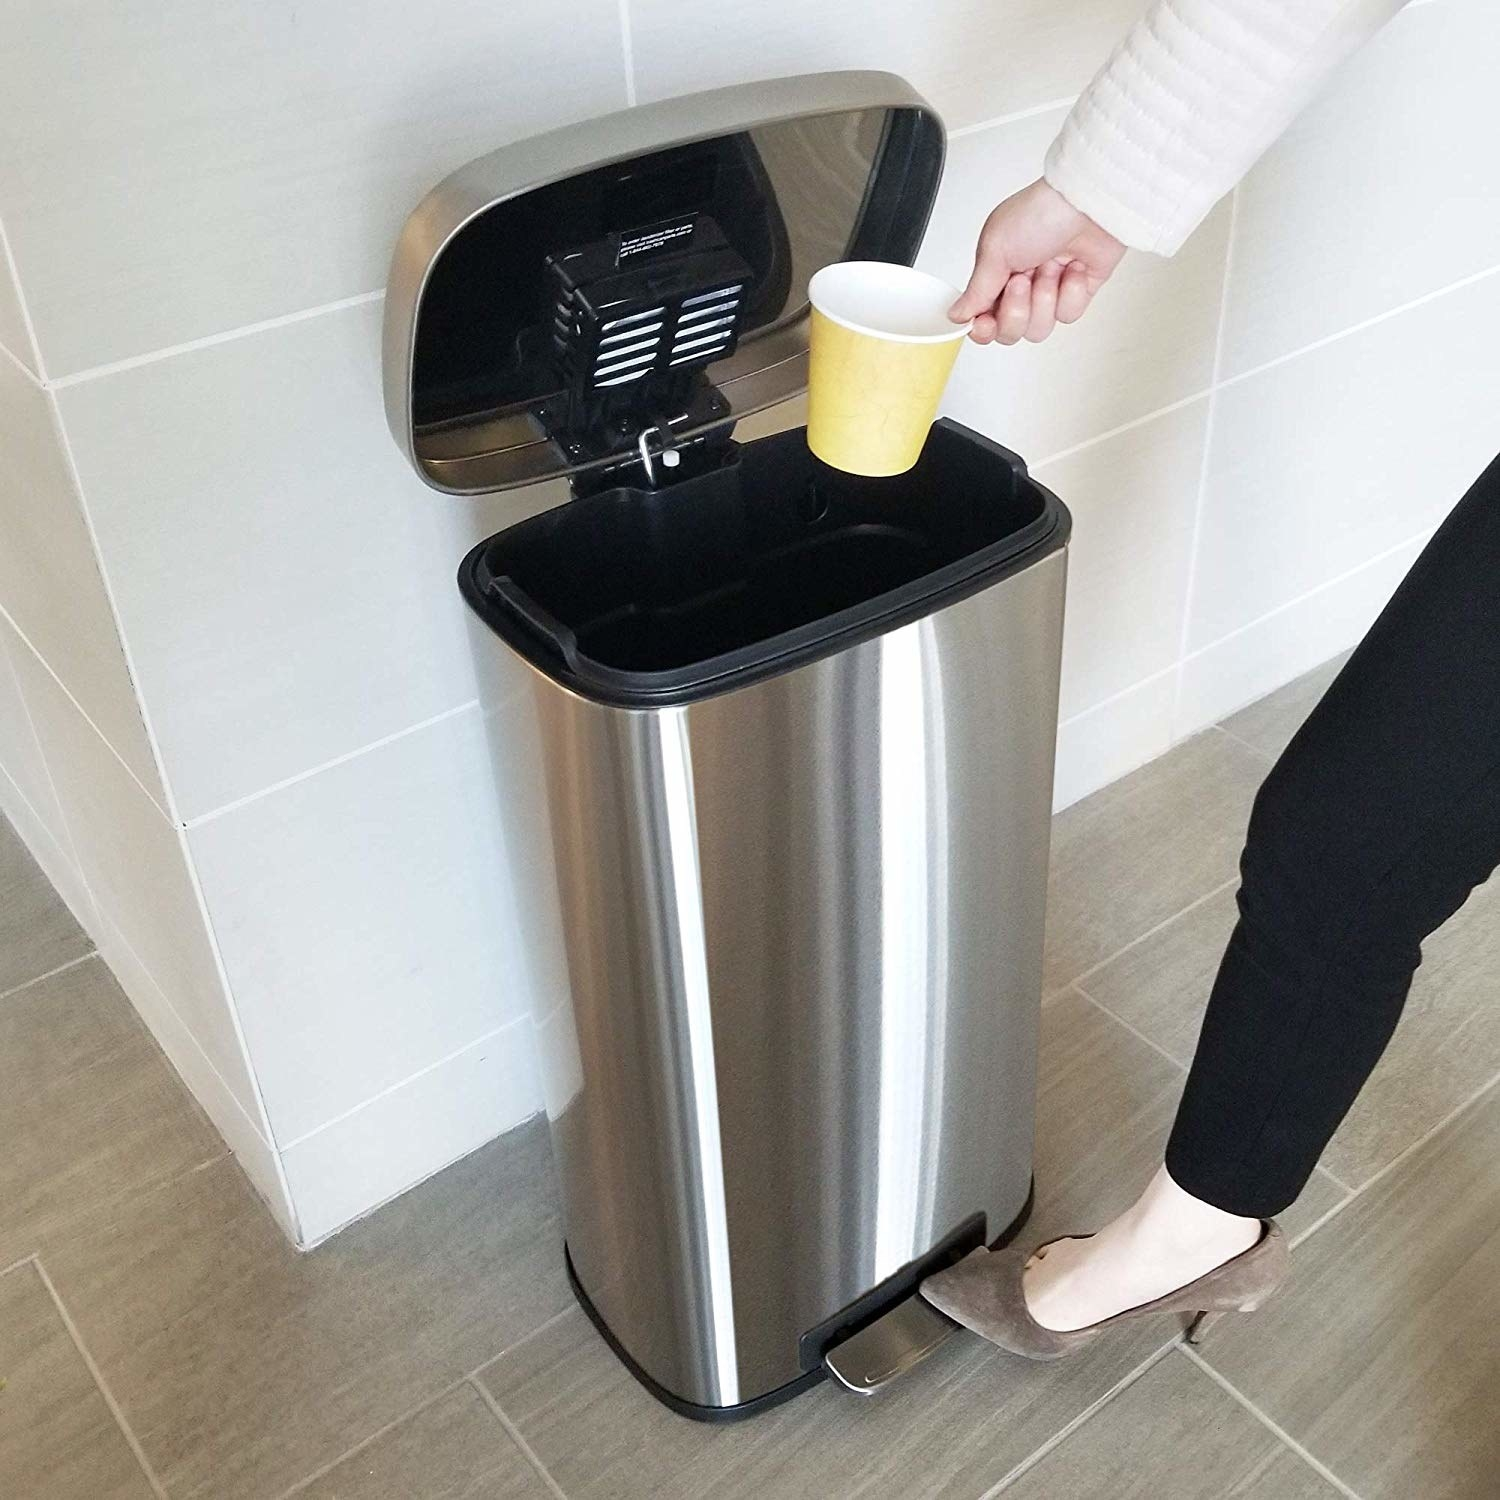 A model stepping on the trashcan opener and throwing out a disposable cup